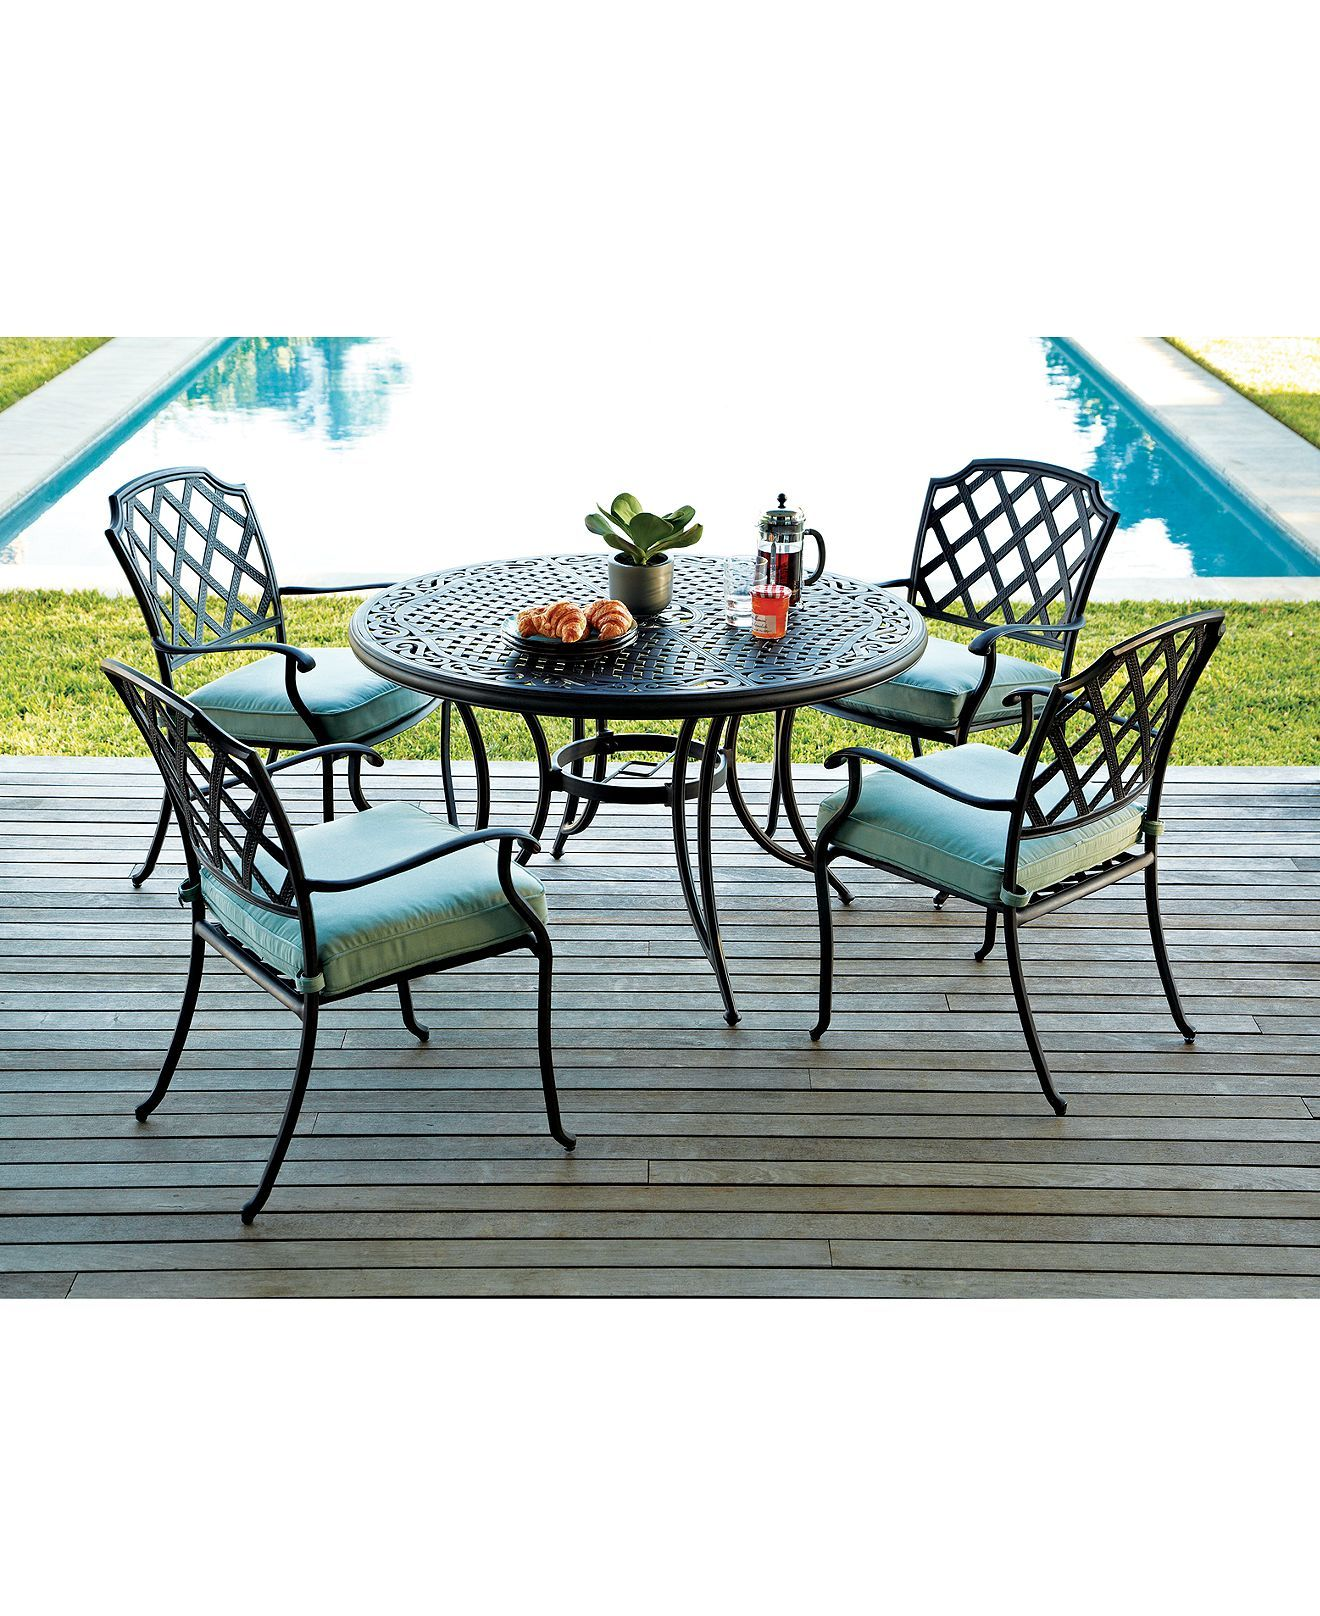 Exceptionnel Nottingham Outdoor Patio Furniture Dining Sets U0026 Pieces   Patio U0026 Outdoor  Seating   Furniture   Macyu0027s